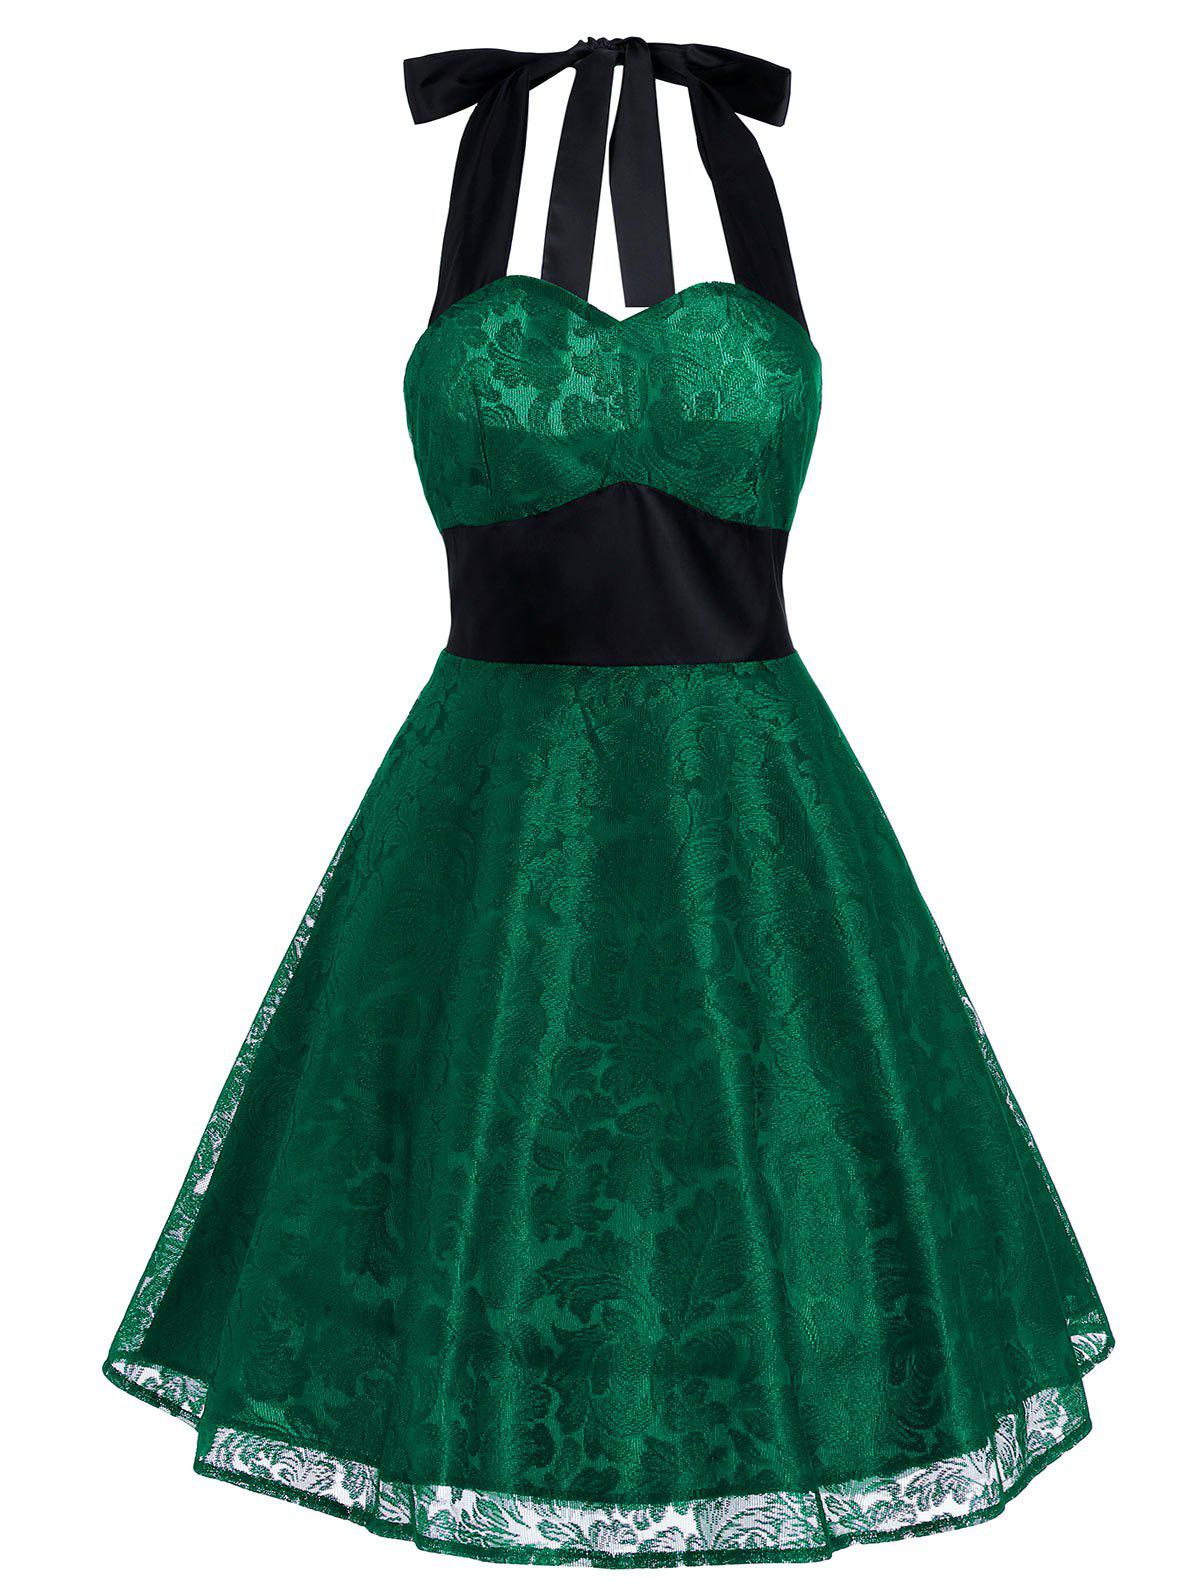 Vintage Halter Lace Panel Contrast Flare DressWOMEN<br><br>Size: M; Color: GREEN; Style: Vintage; Material: Polyester; Silhouette: A-Line; Dresses Length: Knee-Length; Neckline: Halter; Sleeve Length: Sleeveless; Embellishment: Lace; Pattern Type: Patchwork; With Belt: No; Season: Summer; Weight: 0.2300kg; Package Contents: 1 x Dress;